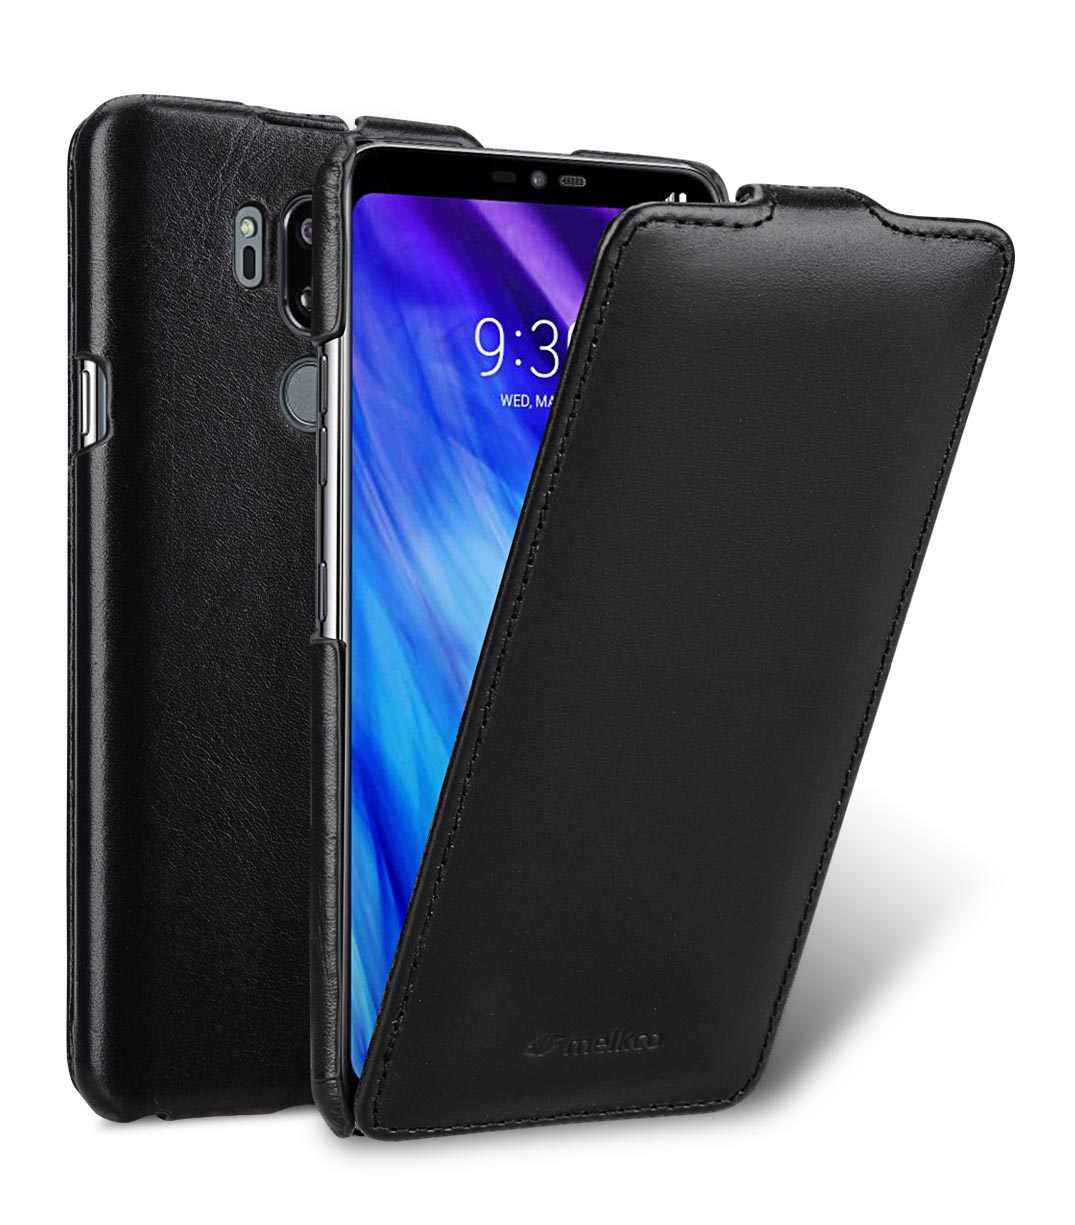 new arrival ffee1 c6961 Premium Leather Case for LG G7 ThinQ / G7+ ThinQ - Jacka Type